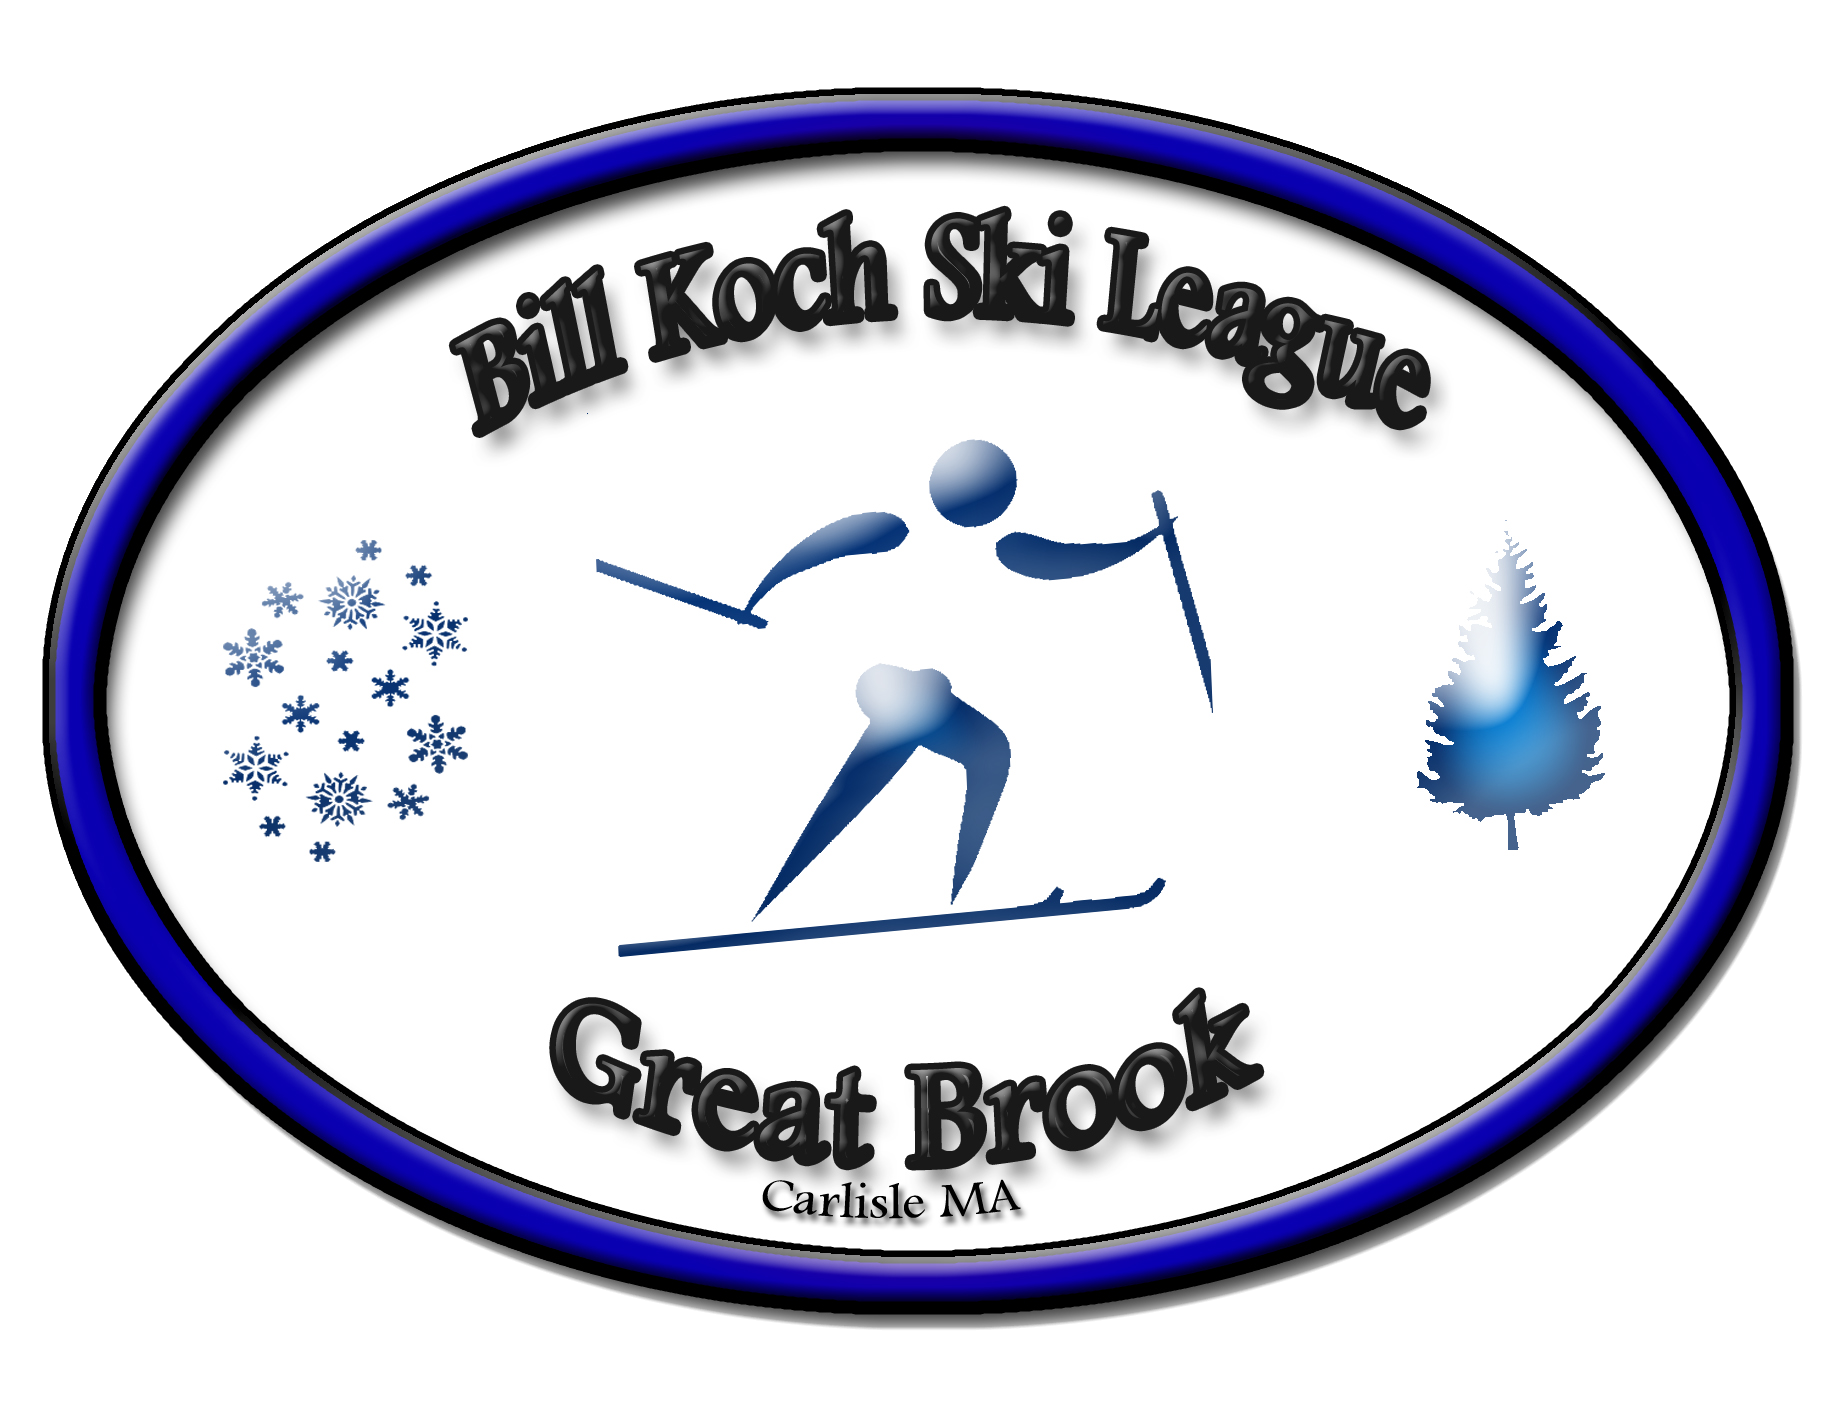 Great Brook Bill Koch Ski League logo